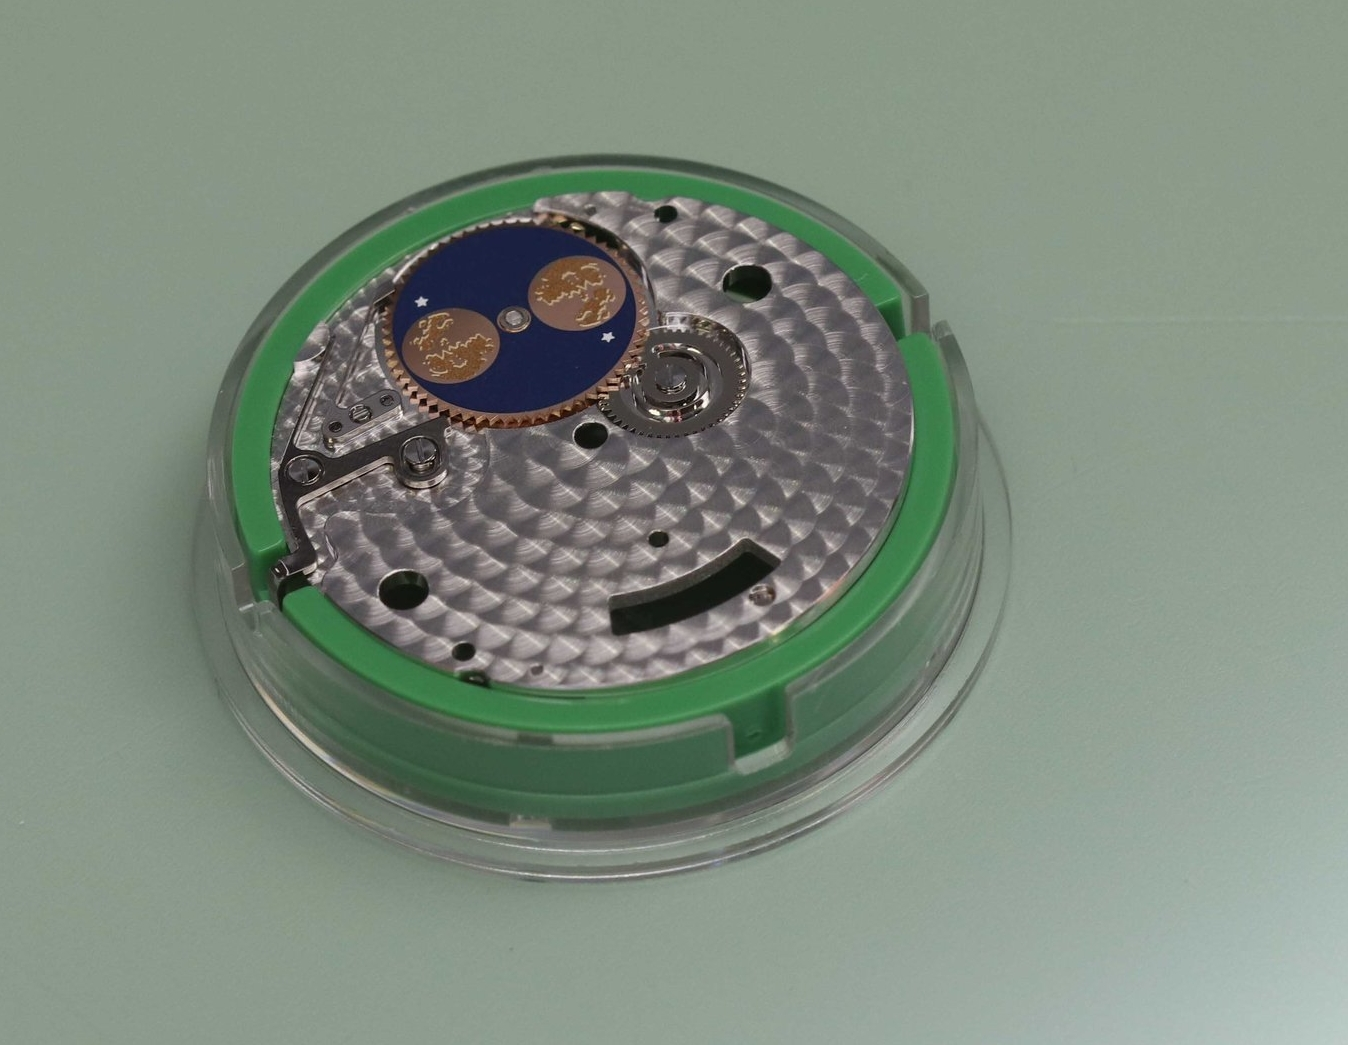 A module about to be placed on the movement.